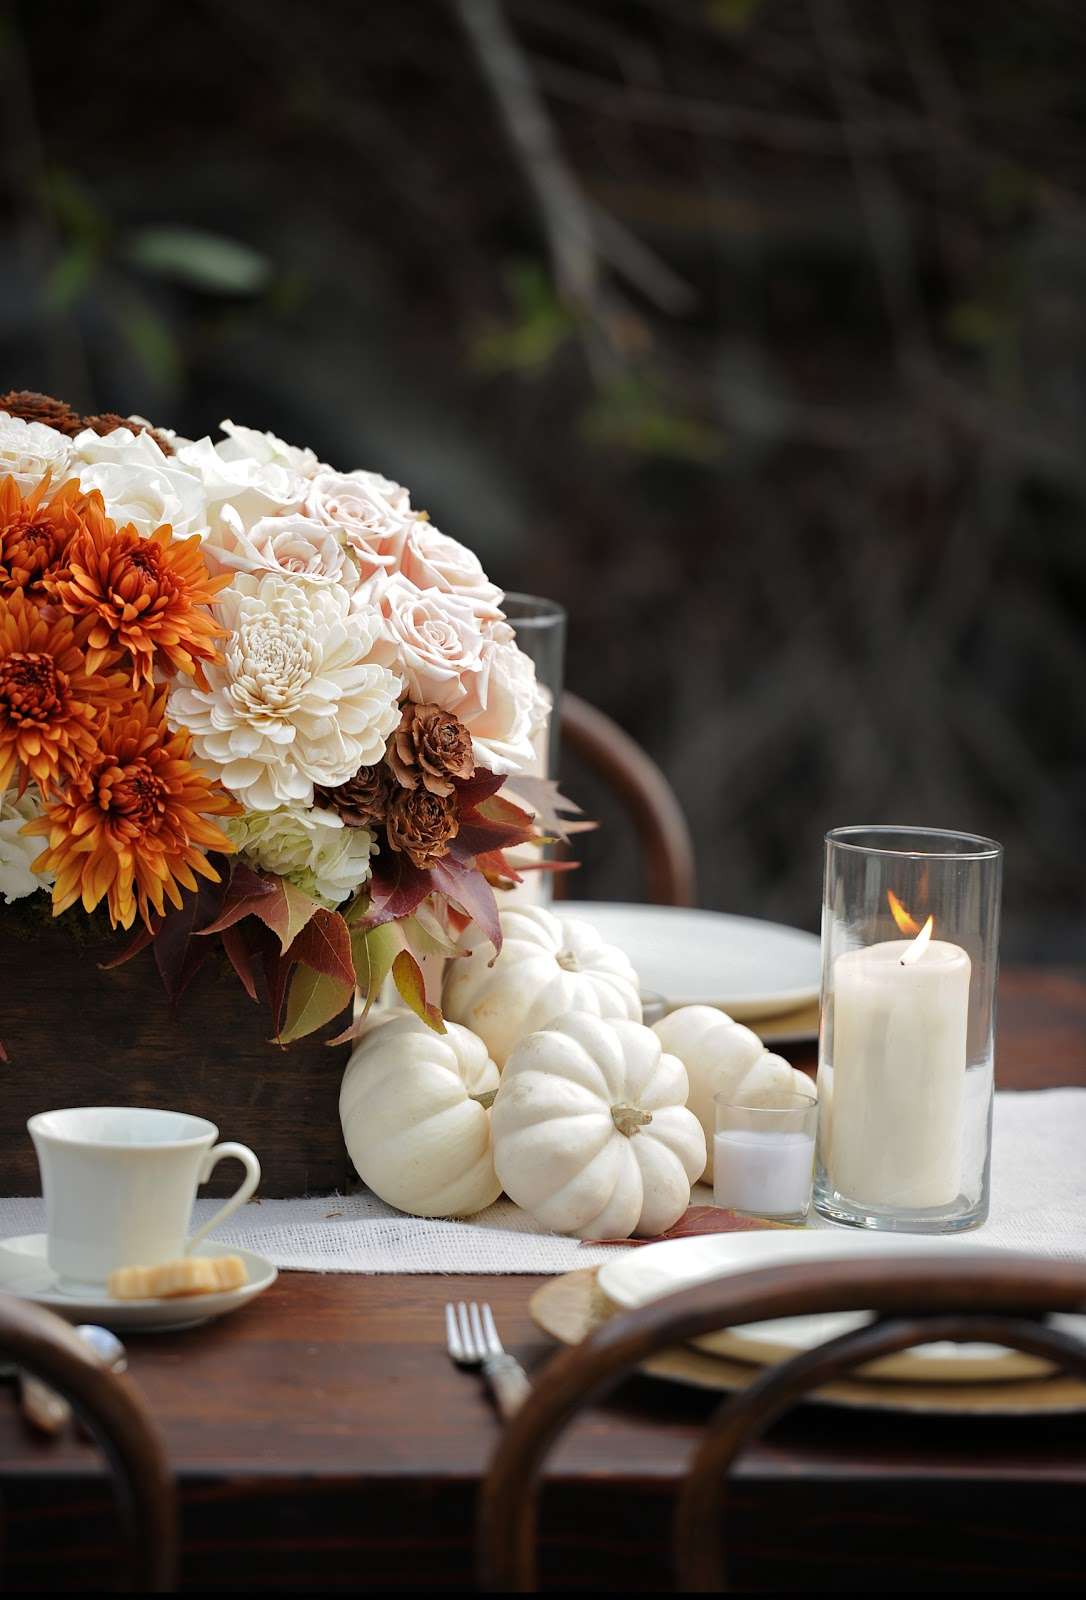 Veves Blog Autumn Wedding Centerpieces Image Sources Clockwise